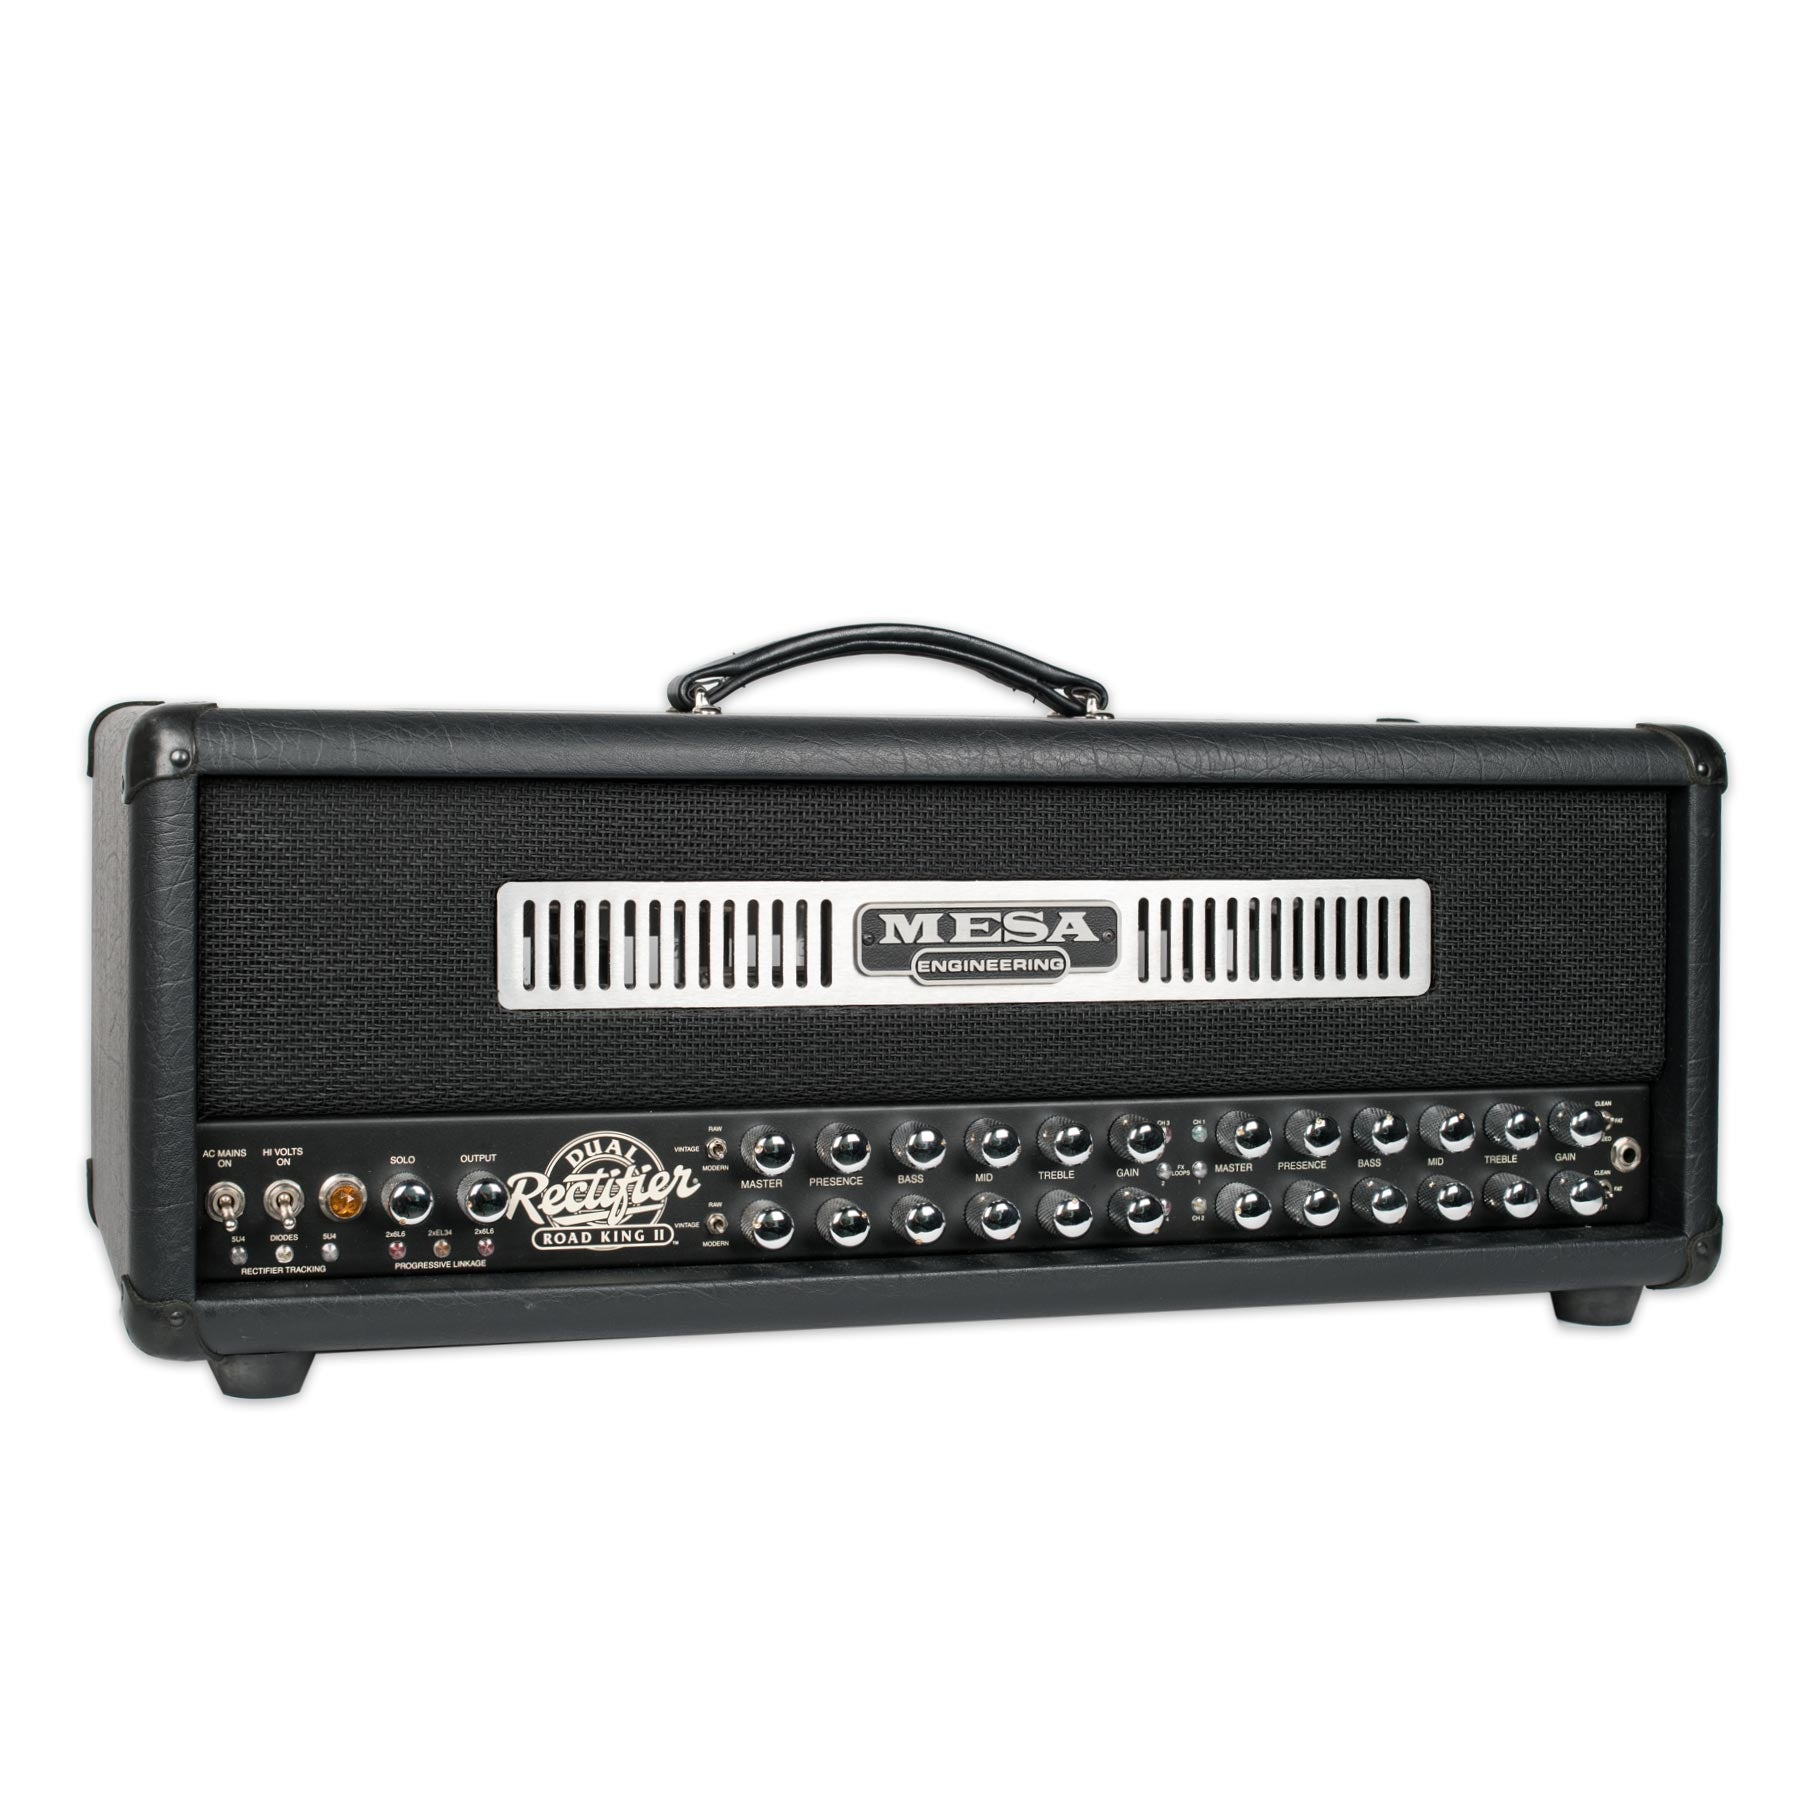 USED MESABOOGIE DUAL RECTIFIER ROAD KING II WITH FOOTSWITCH AND MANUAL